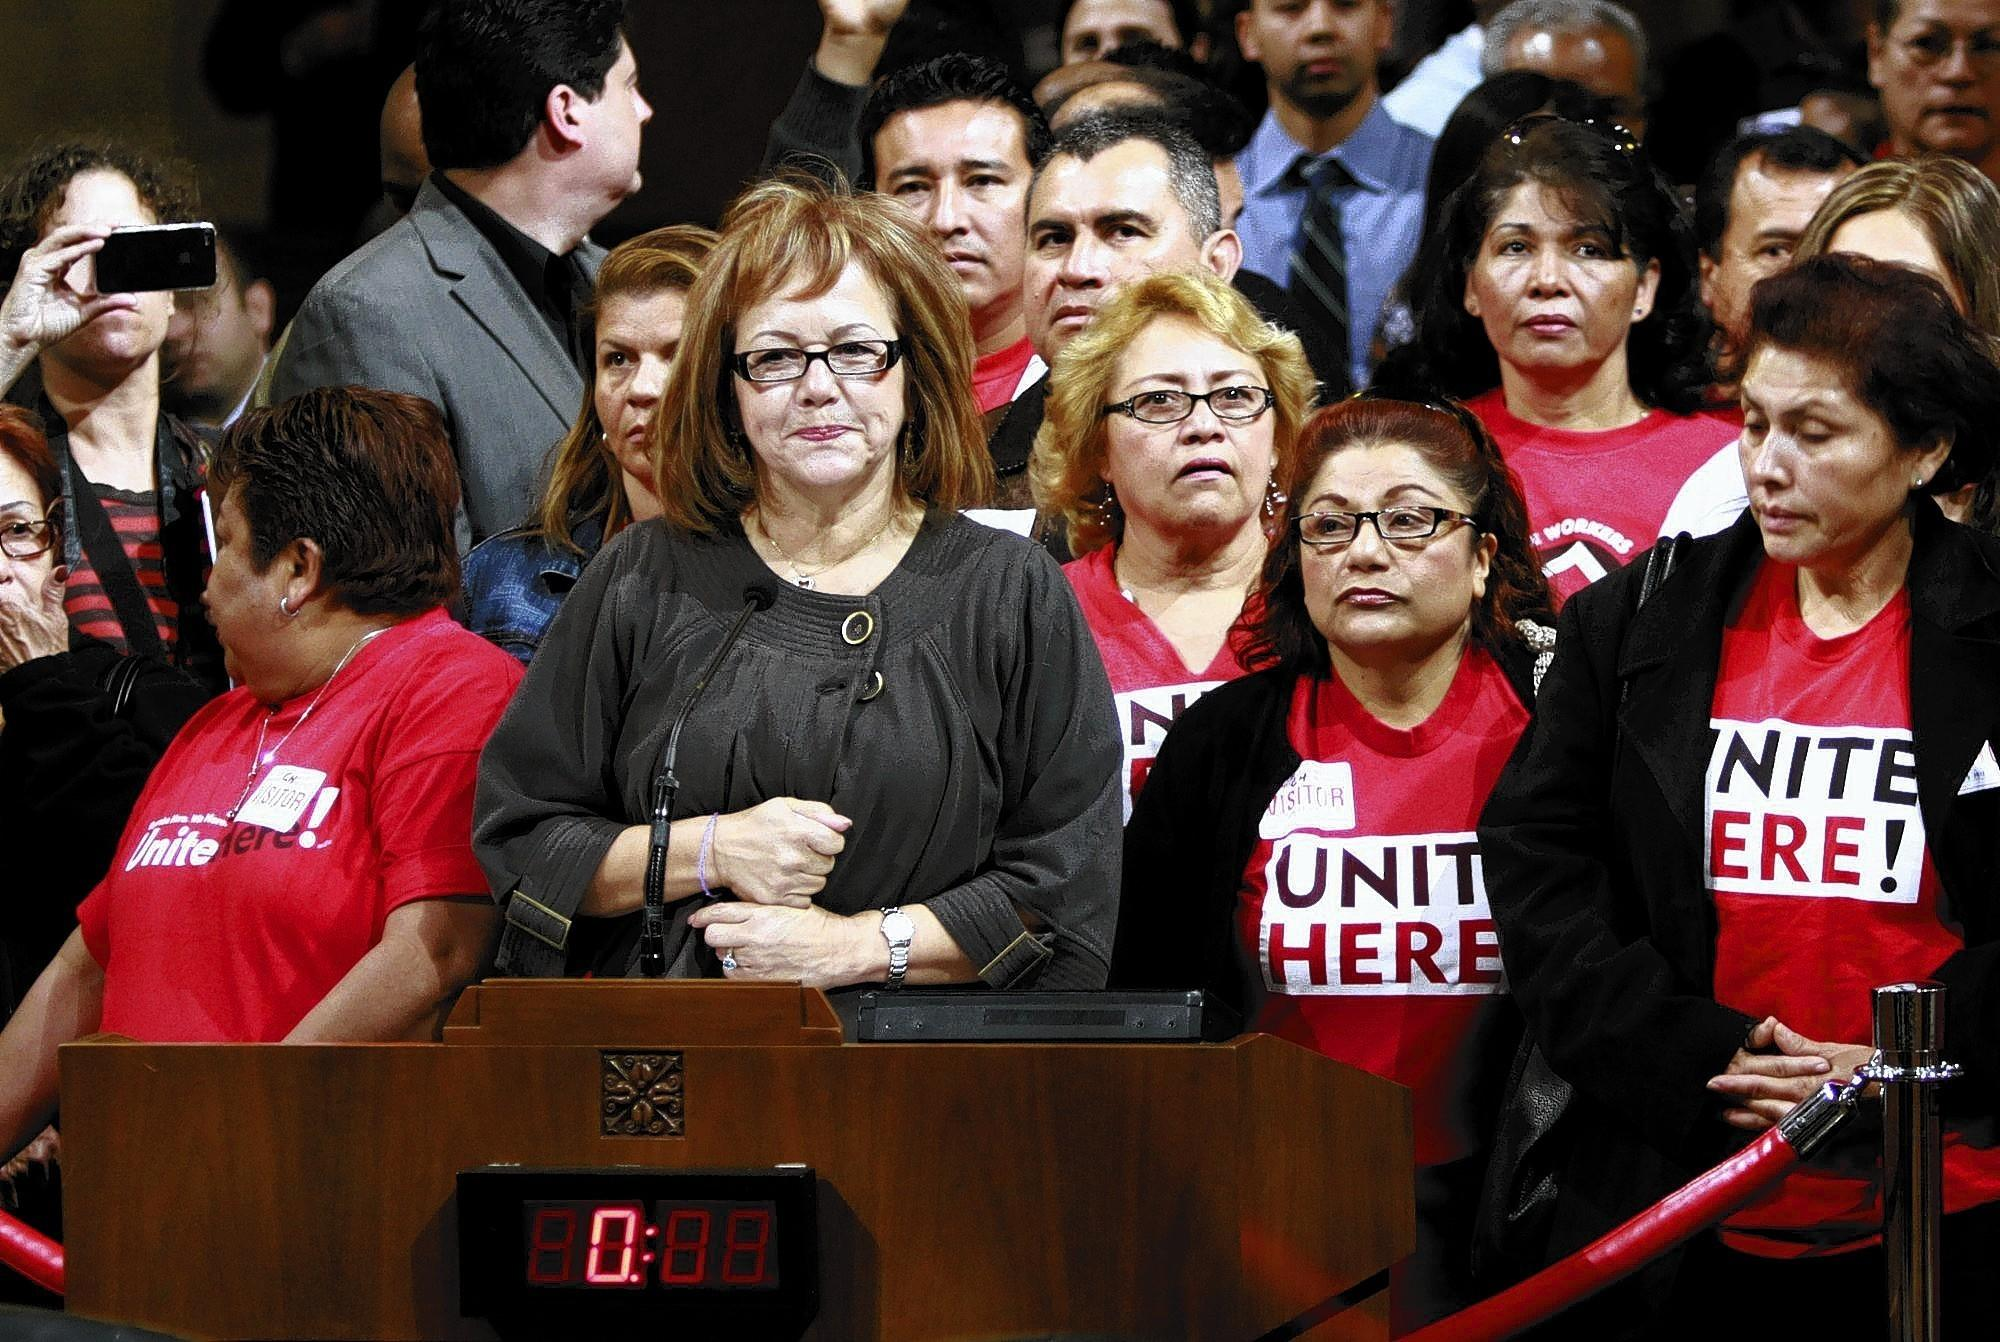 Maria Elena Durazo, center, of the county Federation of Labor, says labor leaders hope a coming Los Angeles proposal to require large hotels to pay workers at least $15 an hour will spread to other industries.